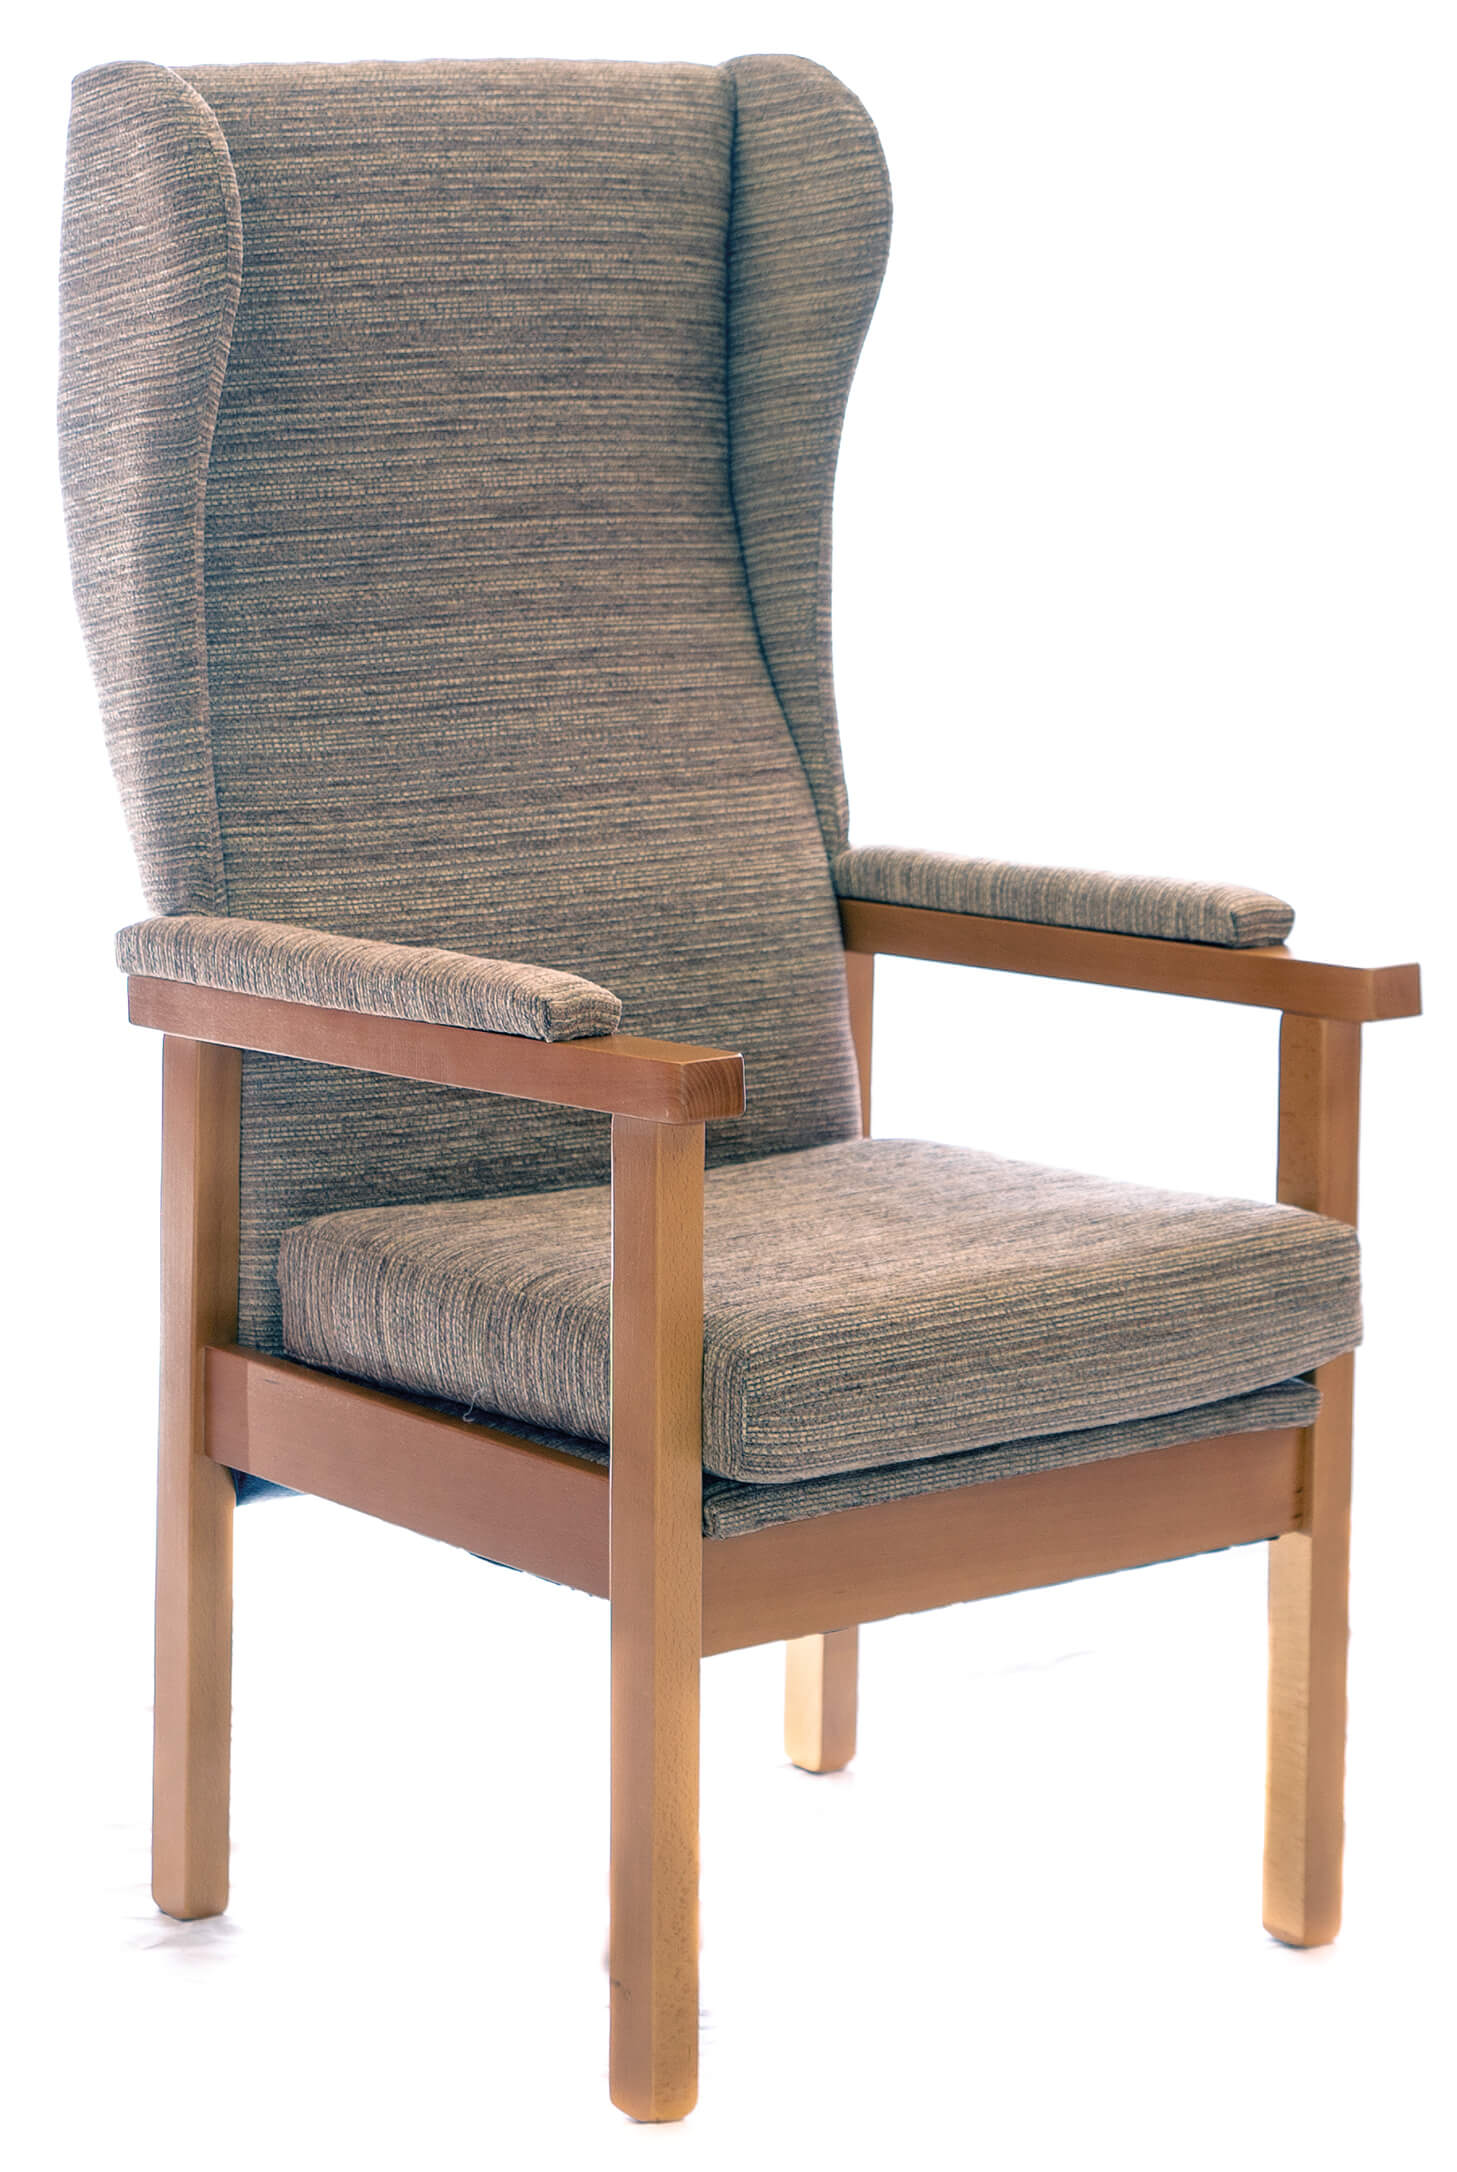 Breydale Fireside Chair